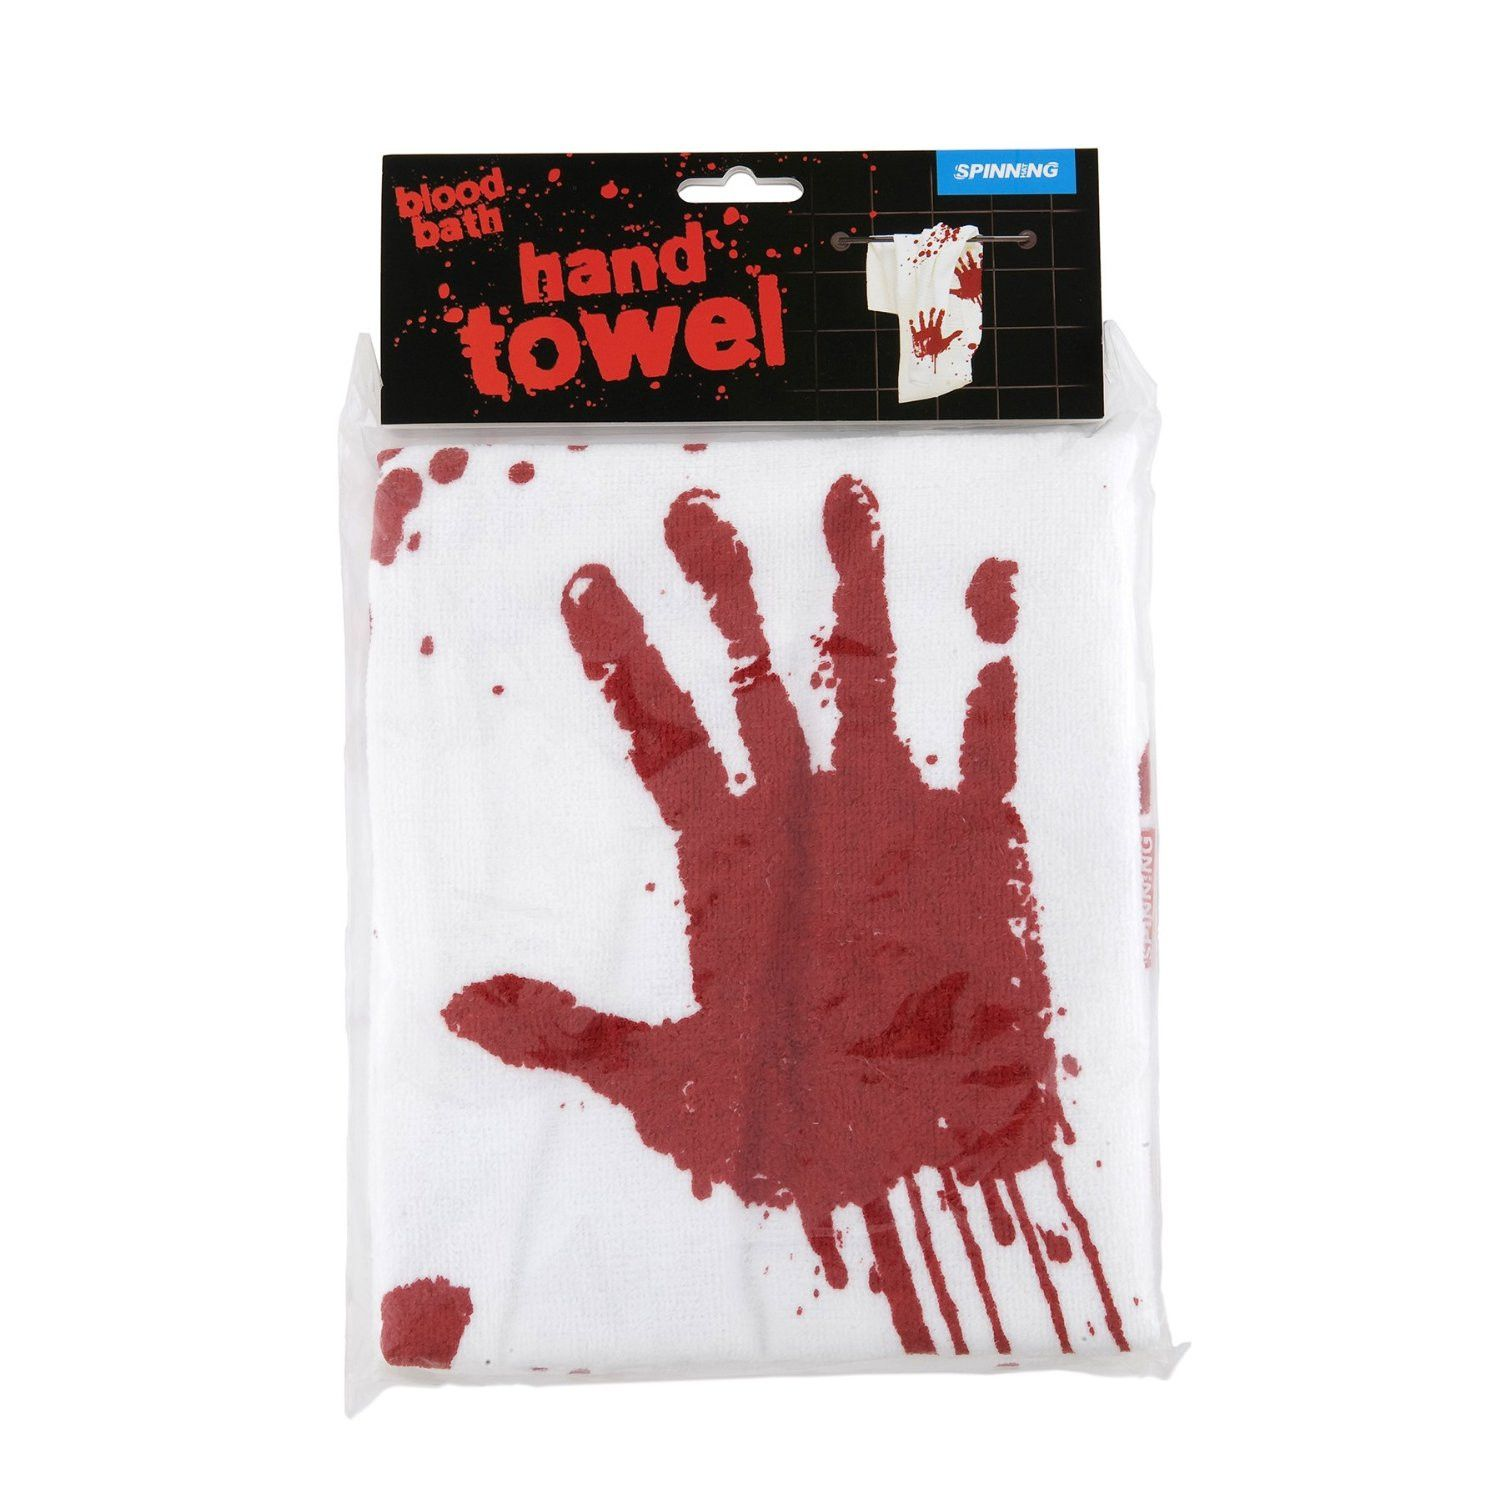 Blood Bath Hand Towel By Spinning Hat